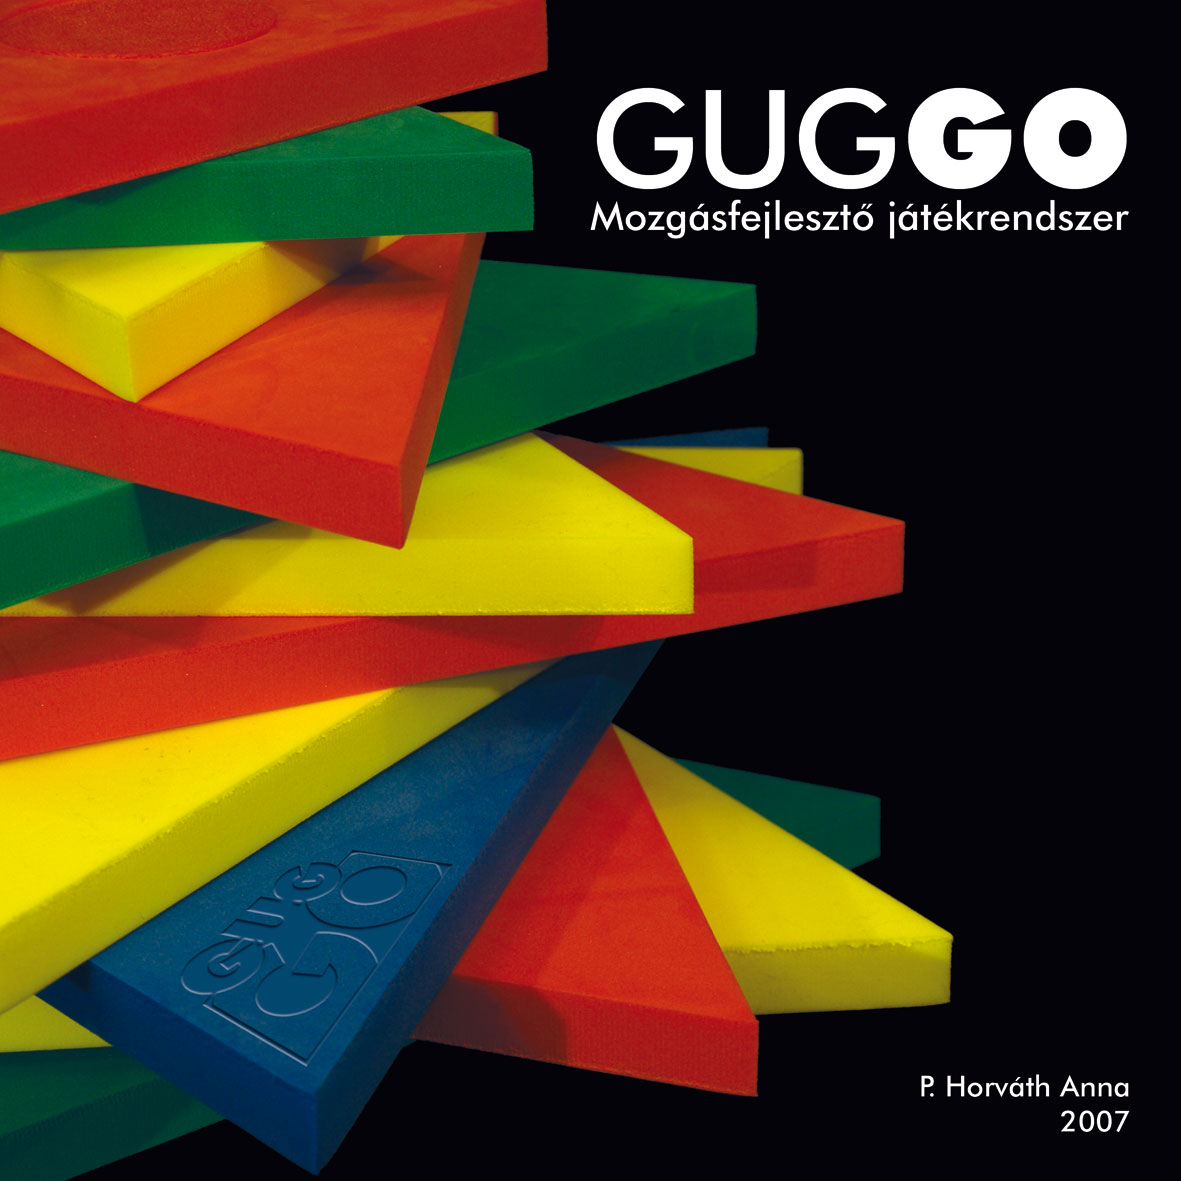 Guggo Movement developing toy system